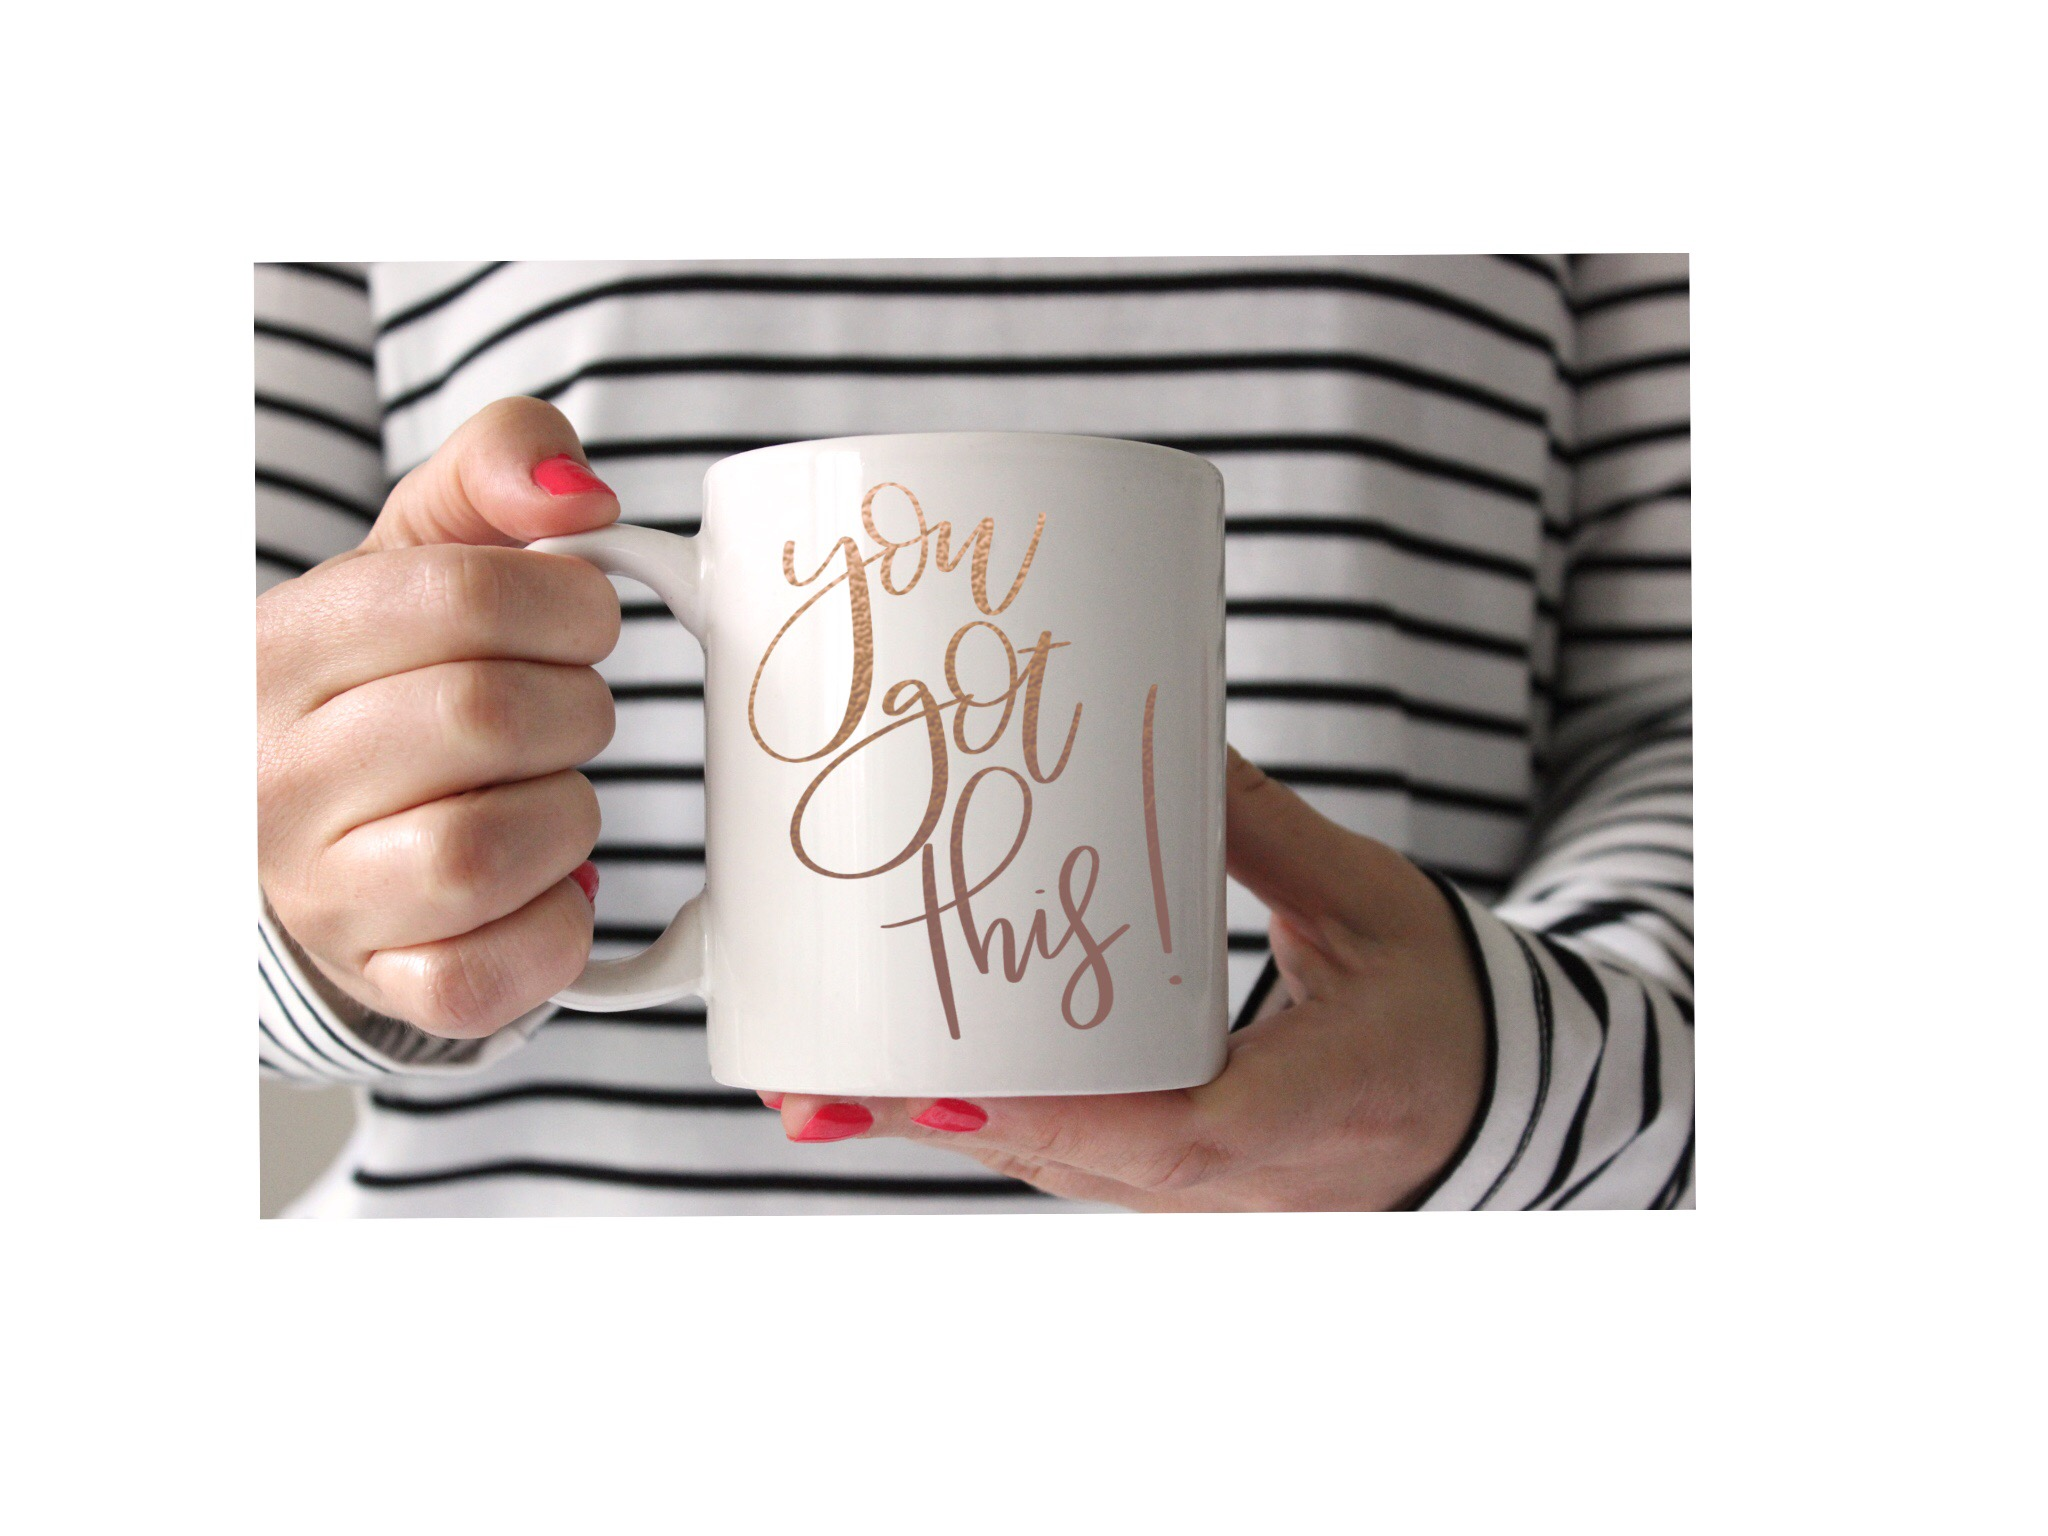 You Got This - Hand lettered SVG example image 1